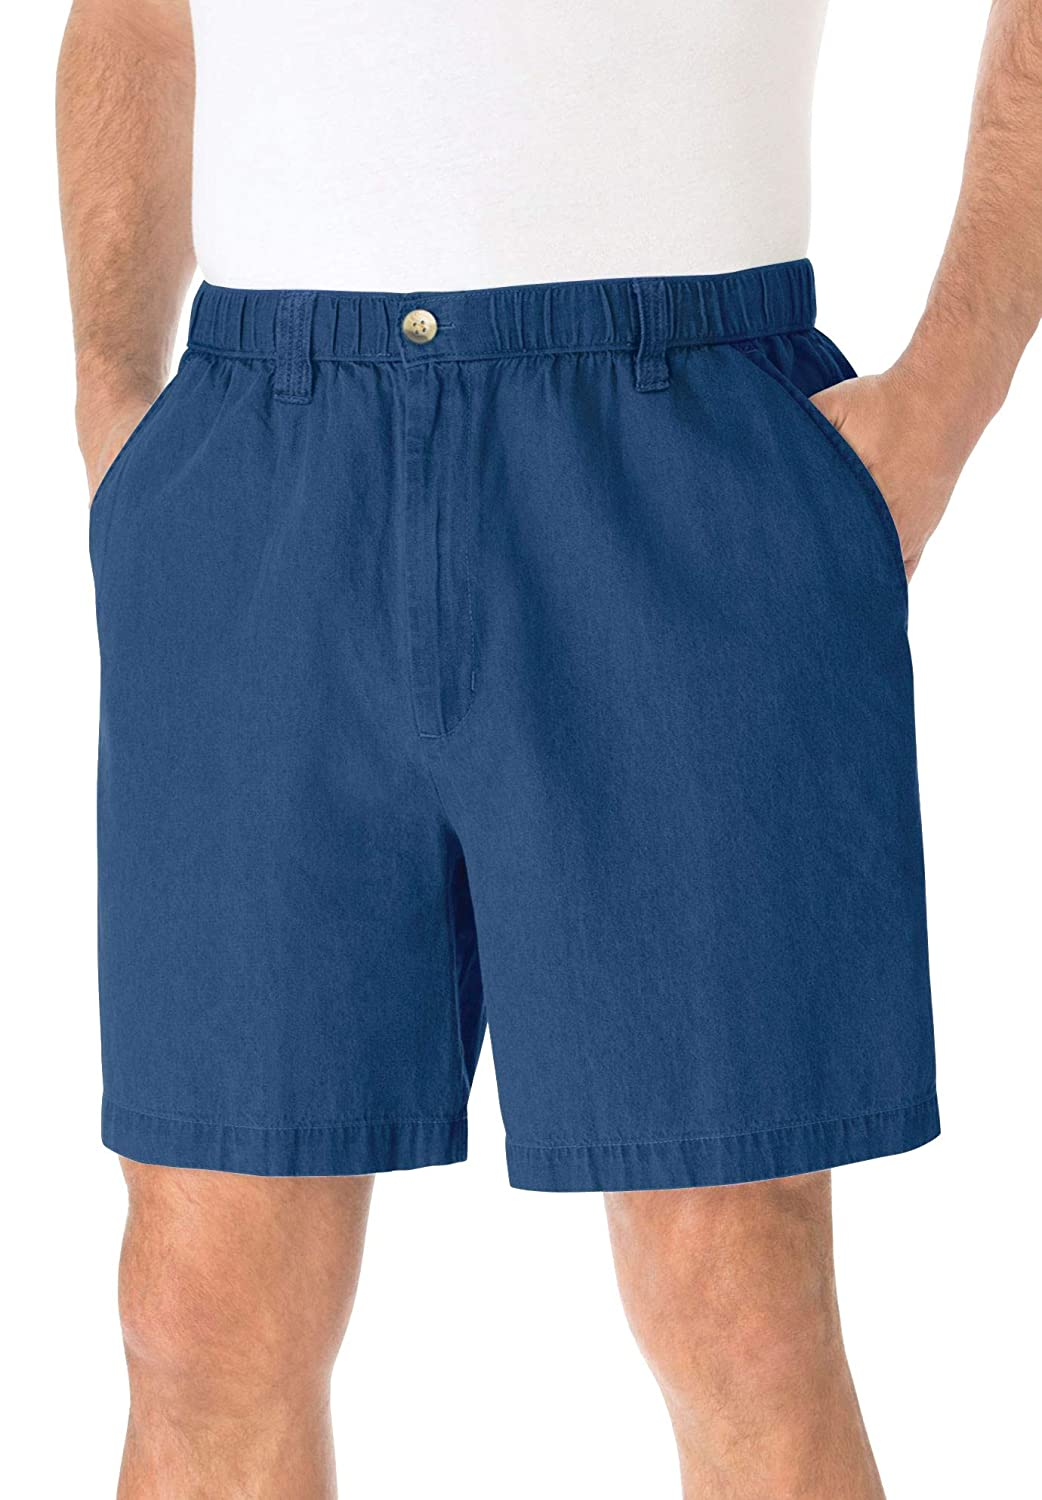 KingSize Mens Big /& Tall 6 Pull-on Shorts